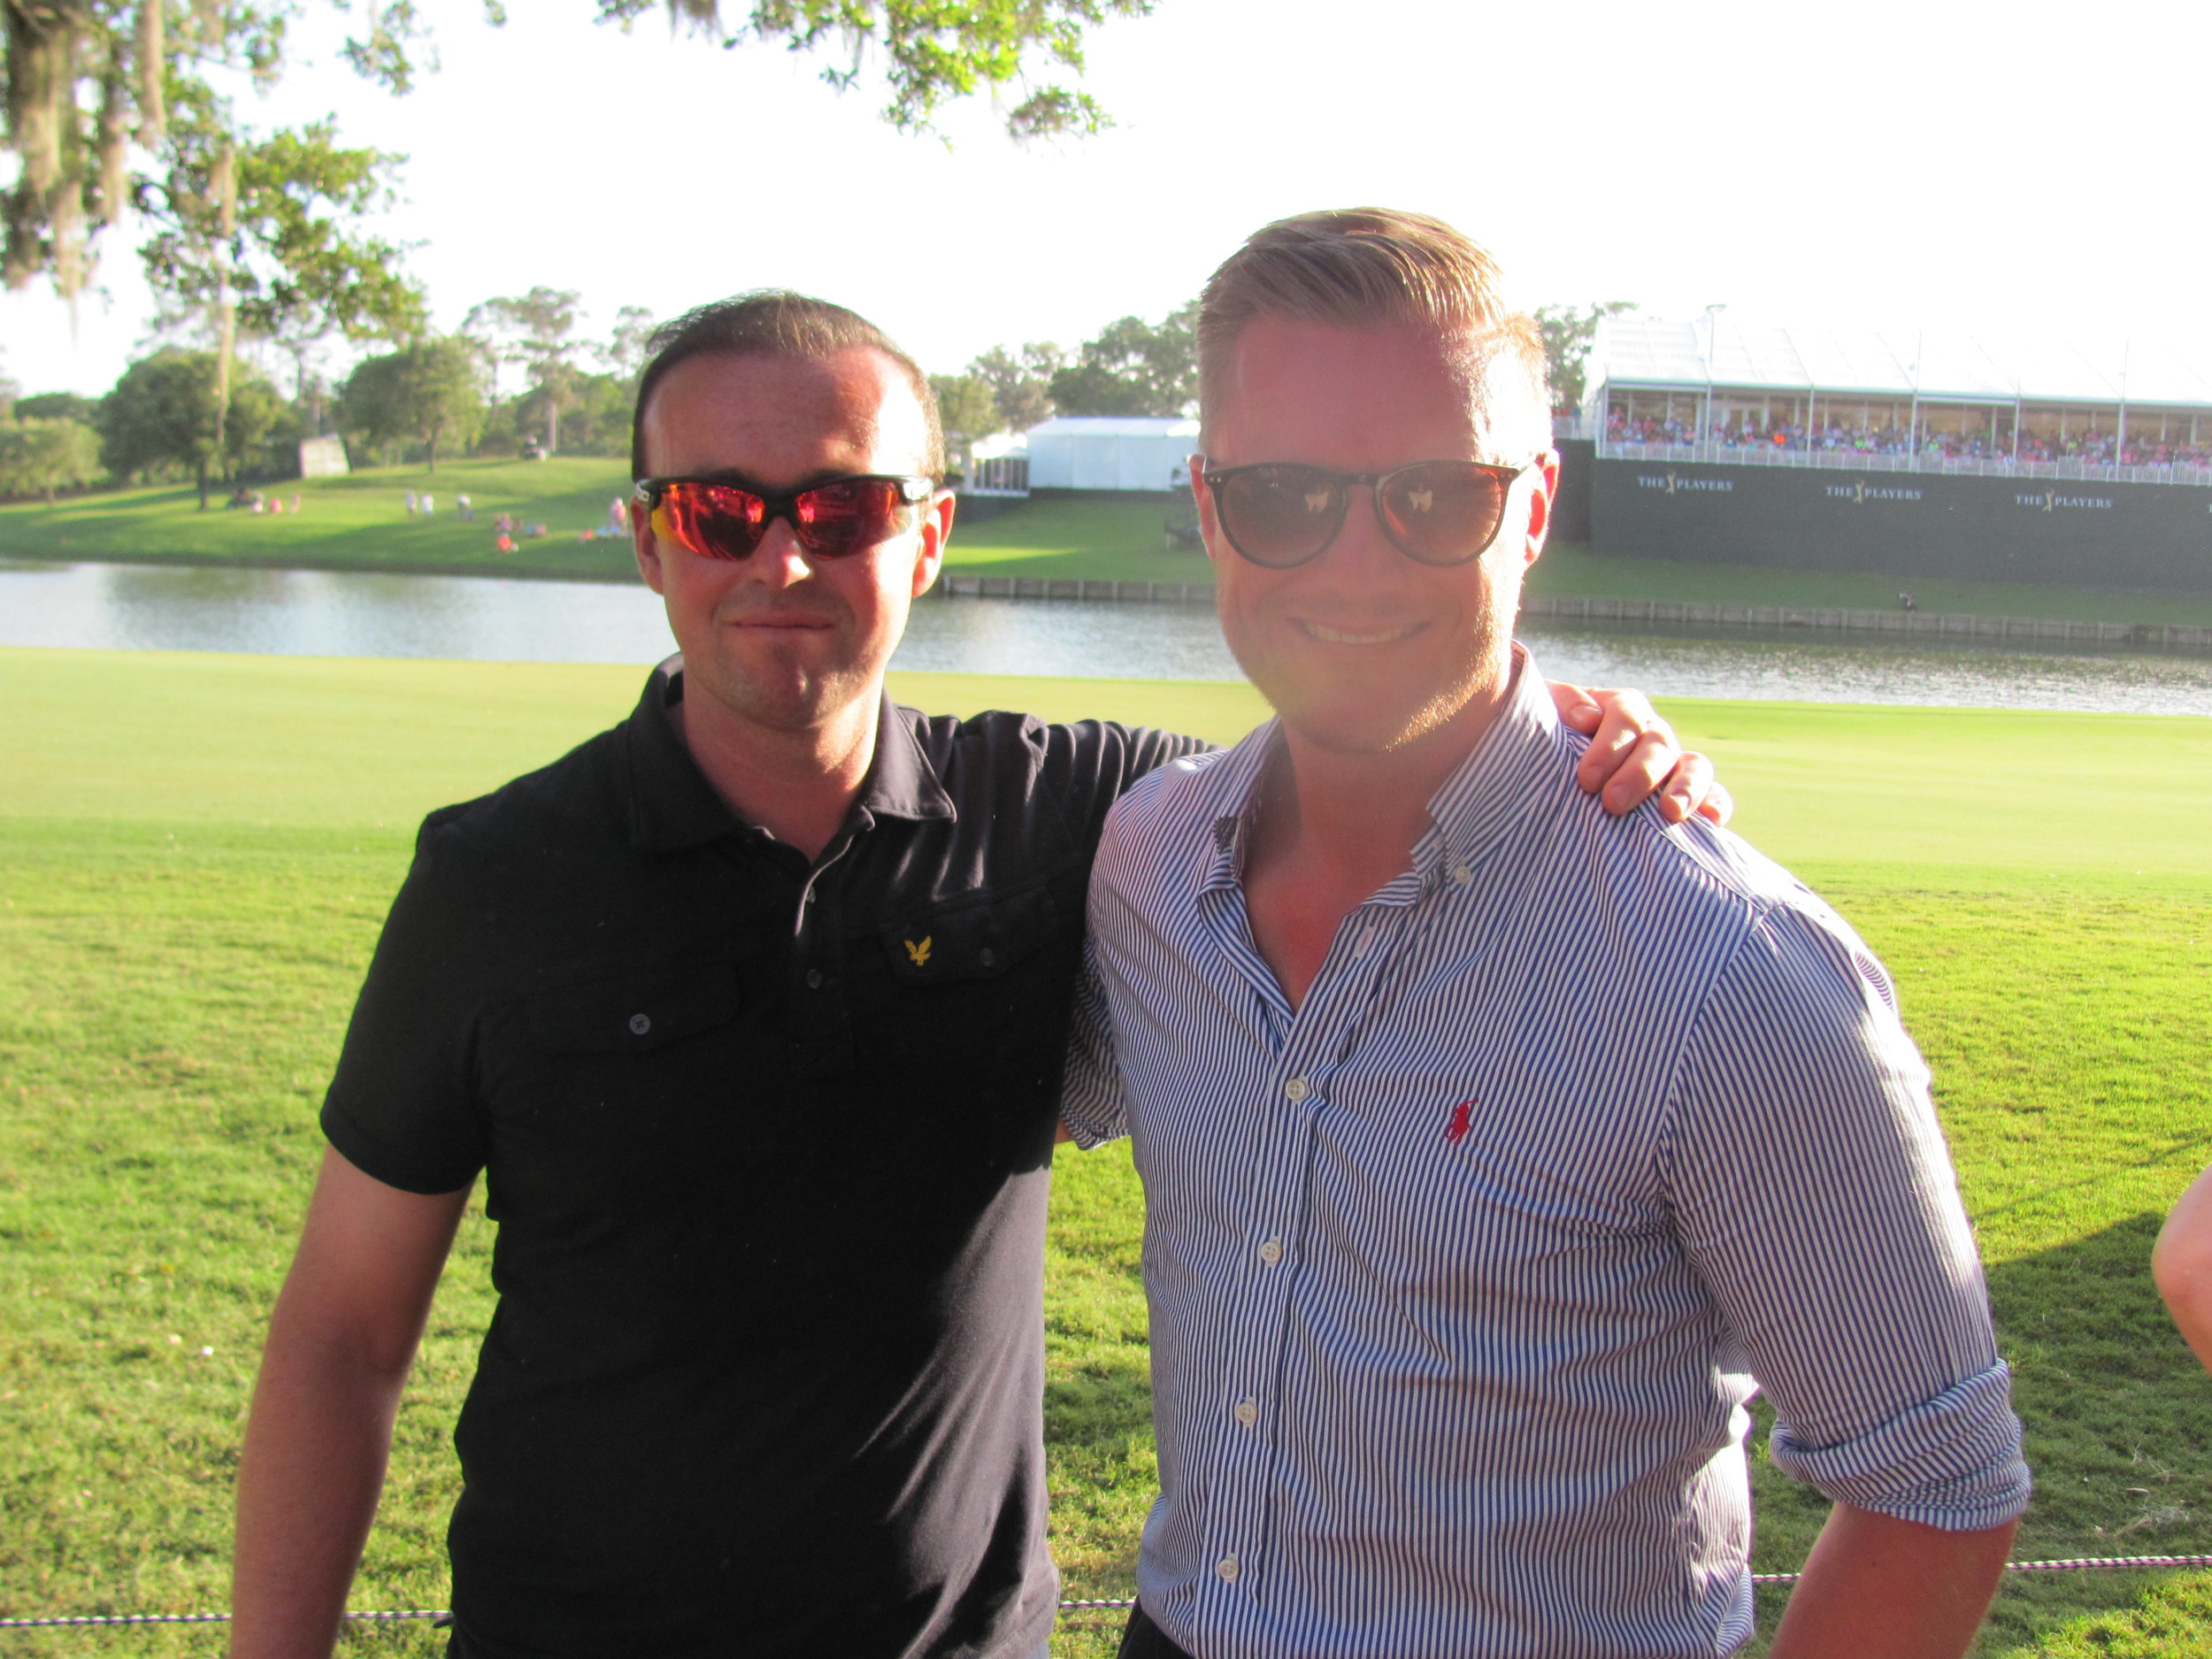 Mark Ellis and Neal Walker from England attend THE PLAYERS Championship for the first time after watching the tournament for years on TV.